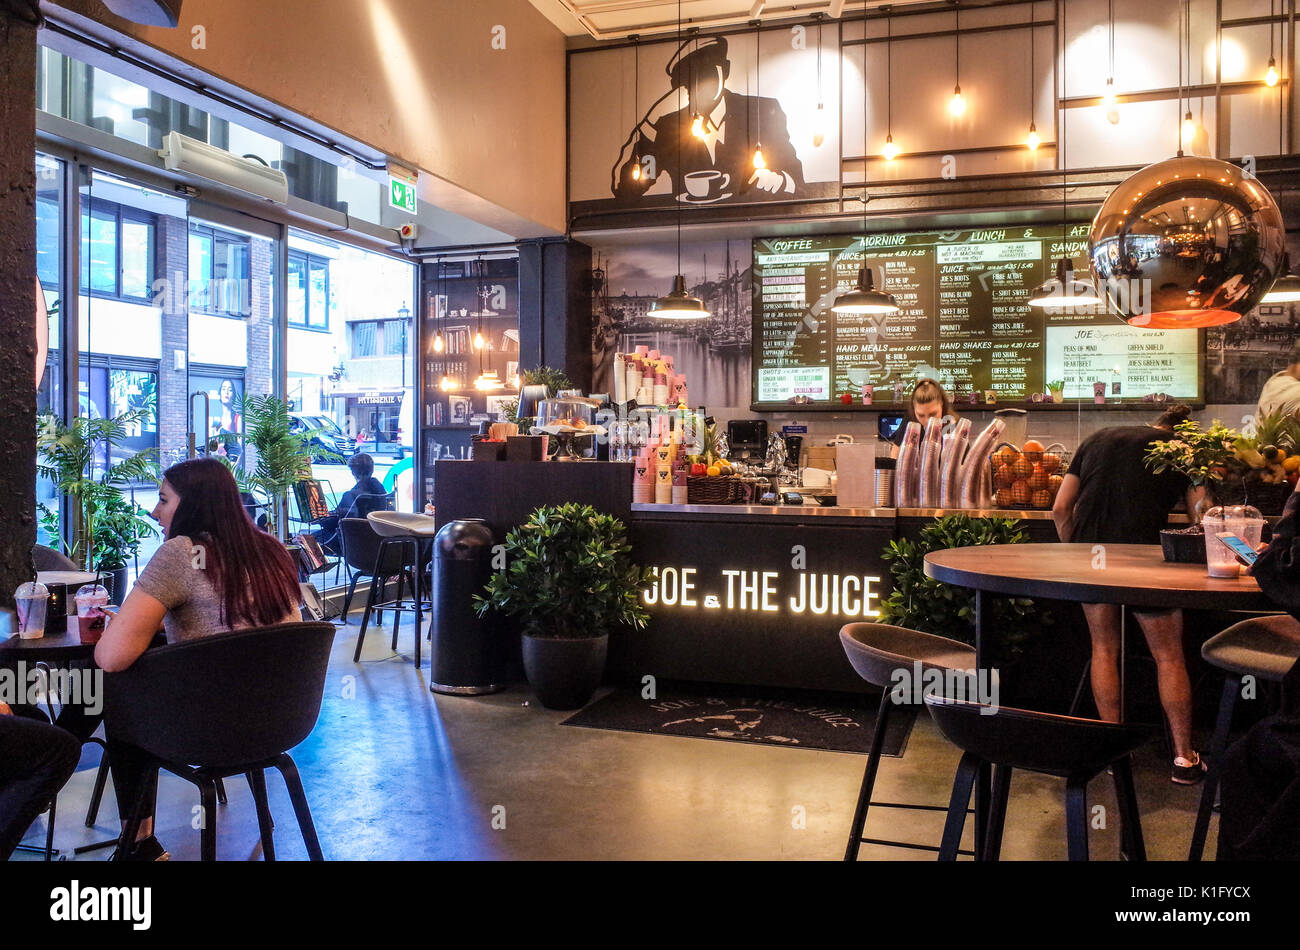 Joe & the Juice cafe in Soho central London - interior view of a London branch of this Danish Coffee and Juice cafe chain - Stock Image